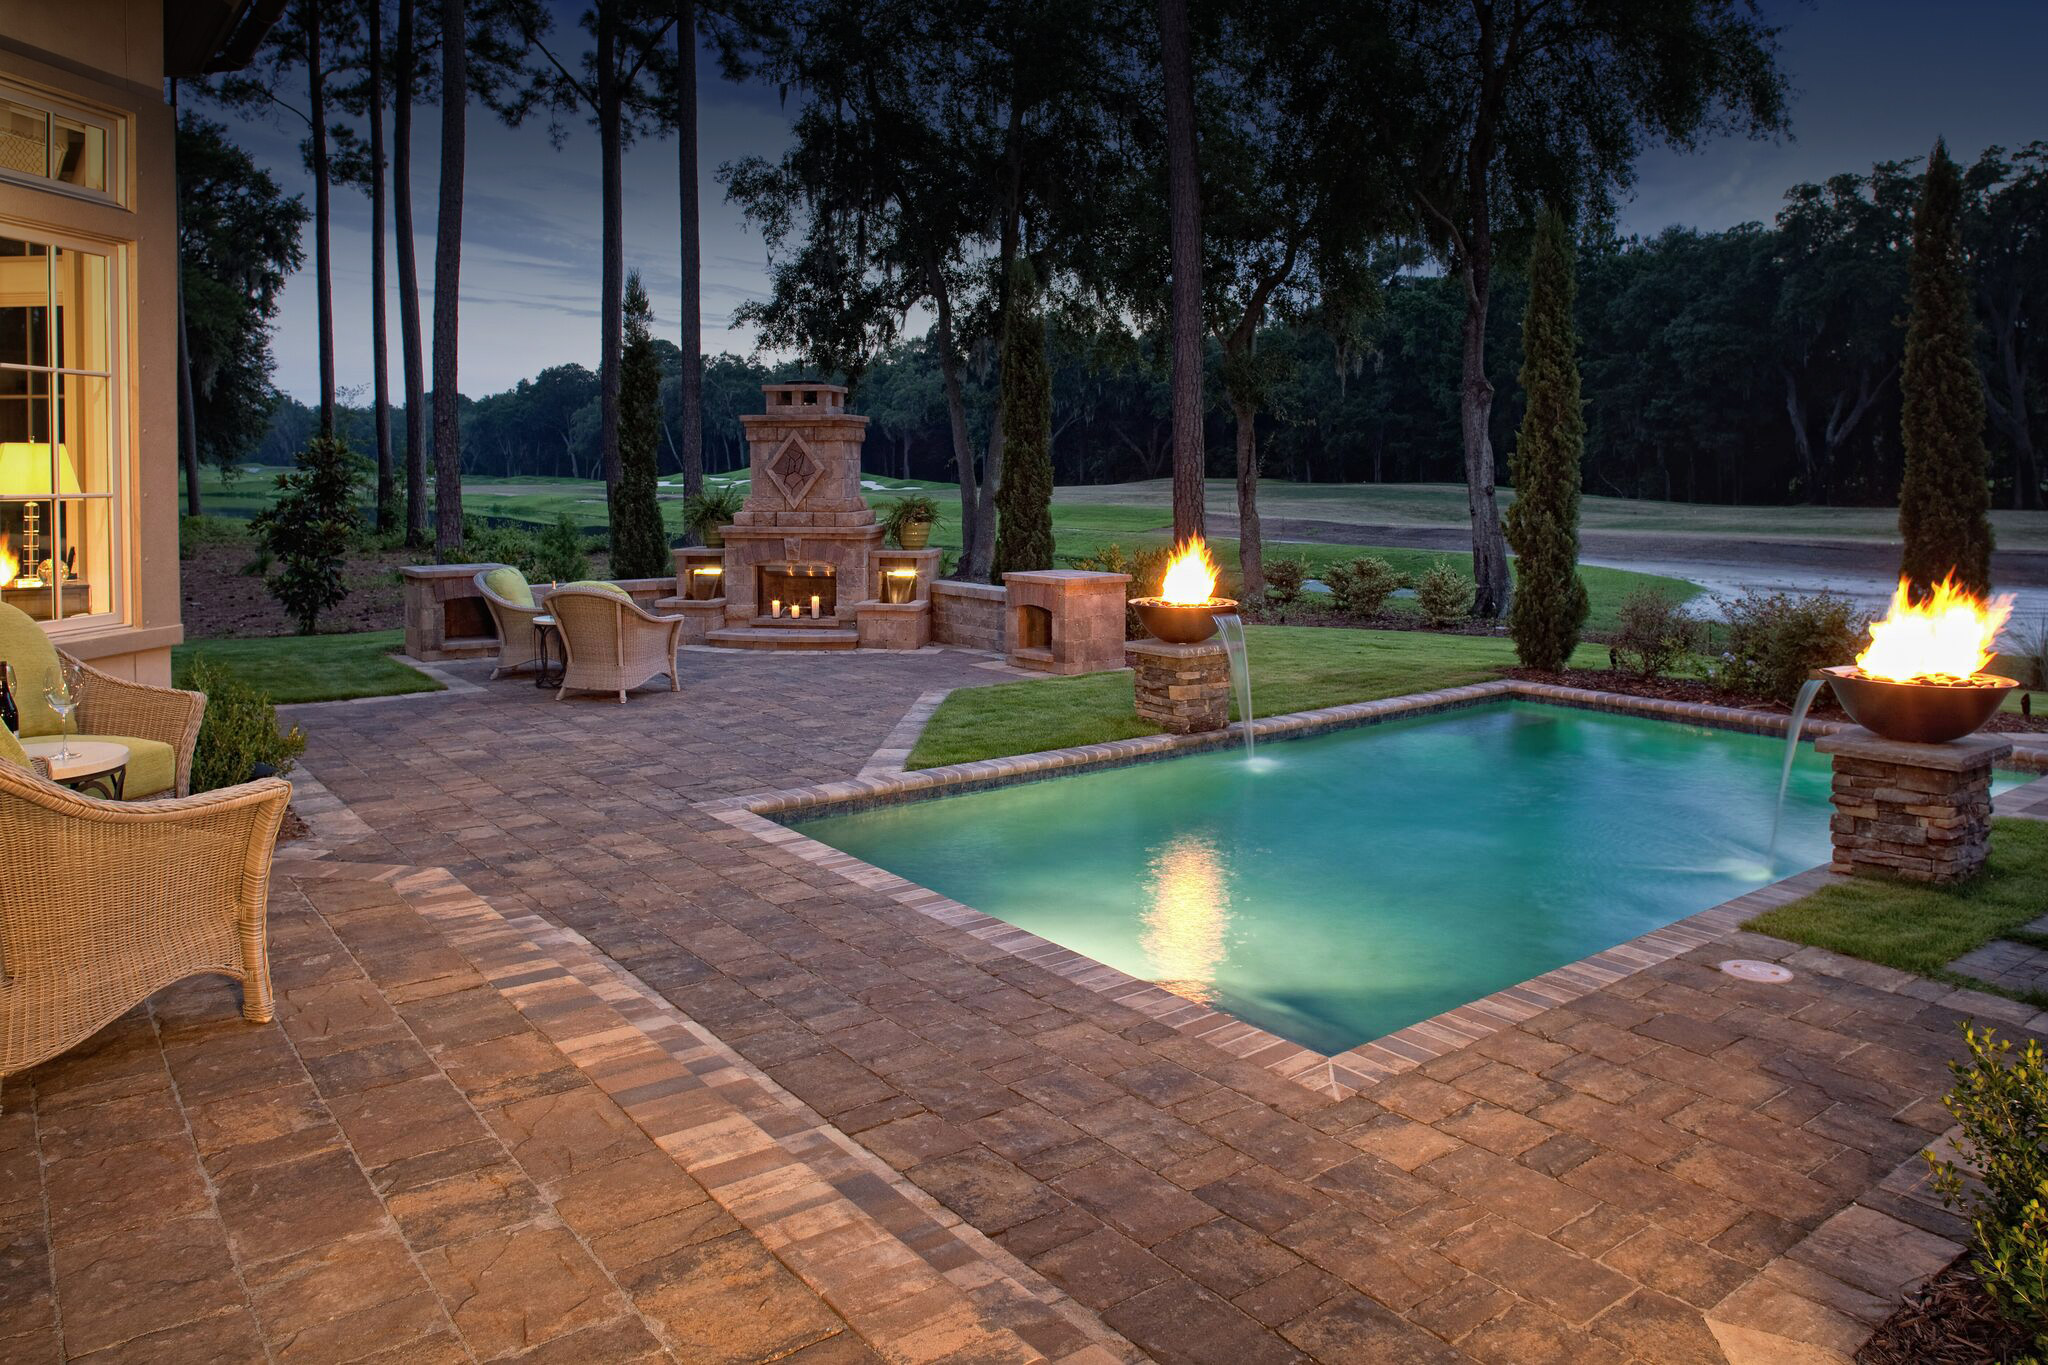 The warm paver design for both the patio and pool deck of this home allows the design to easily flow from one outdoor space to the next. We offer a variety of copings and cap units that can be used for trim. If you look closely at the project above you'll notice we used the same trim for the steps and around the landscape to create a final polished, cohesive look.